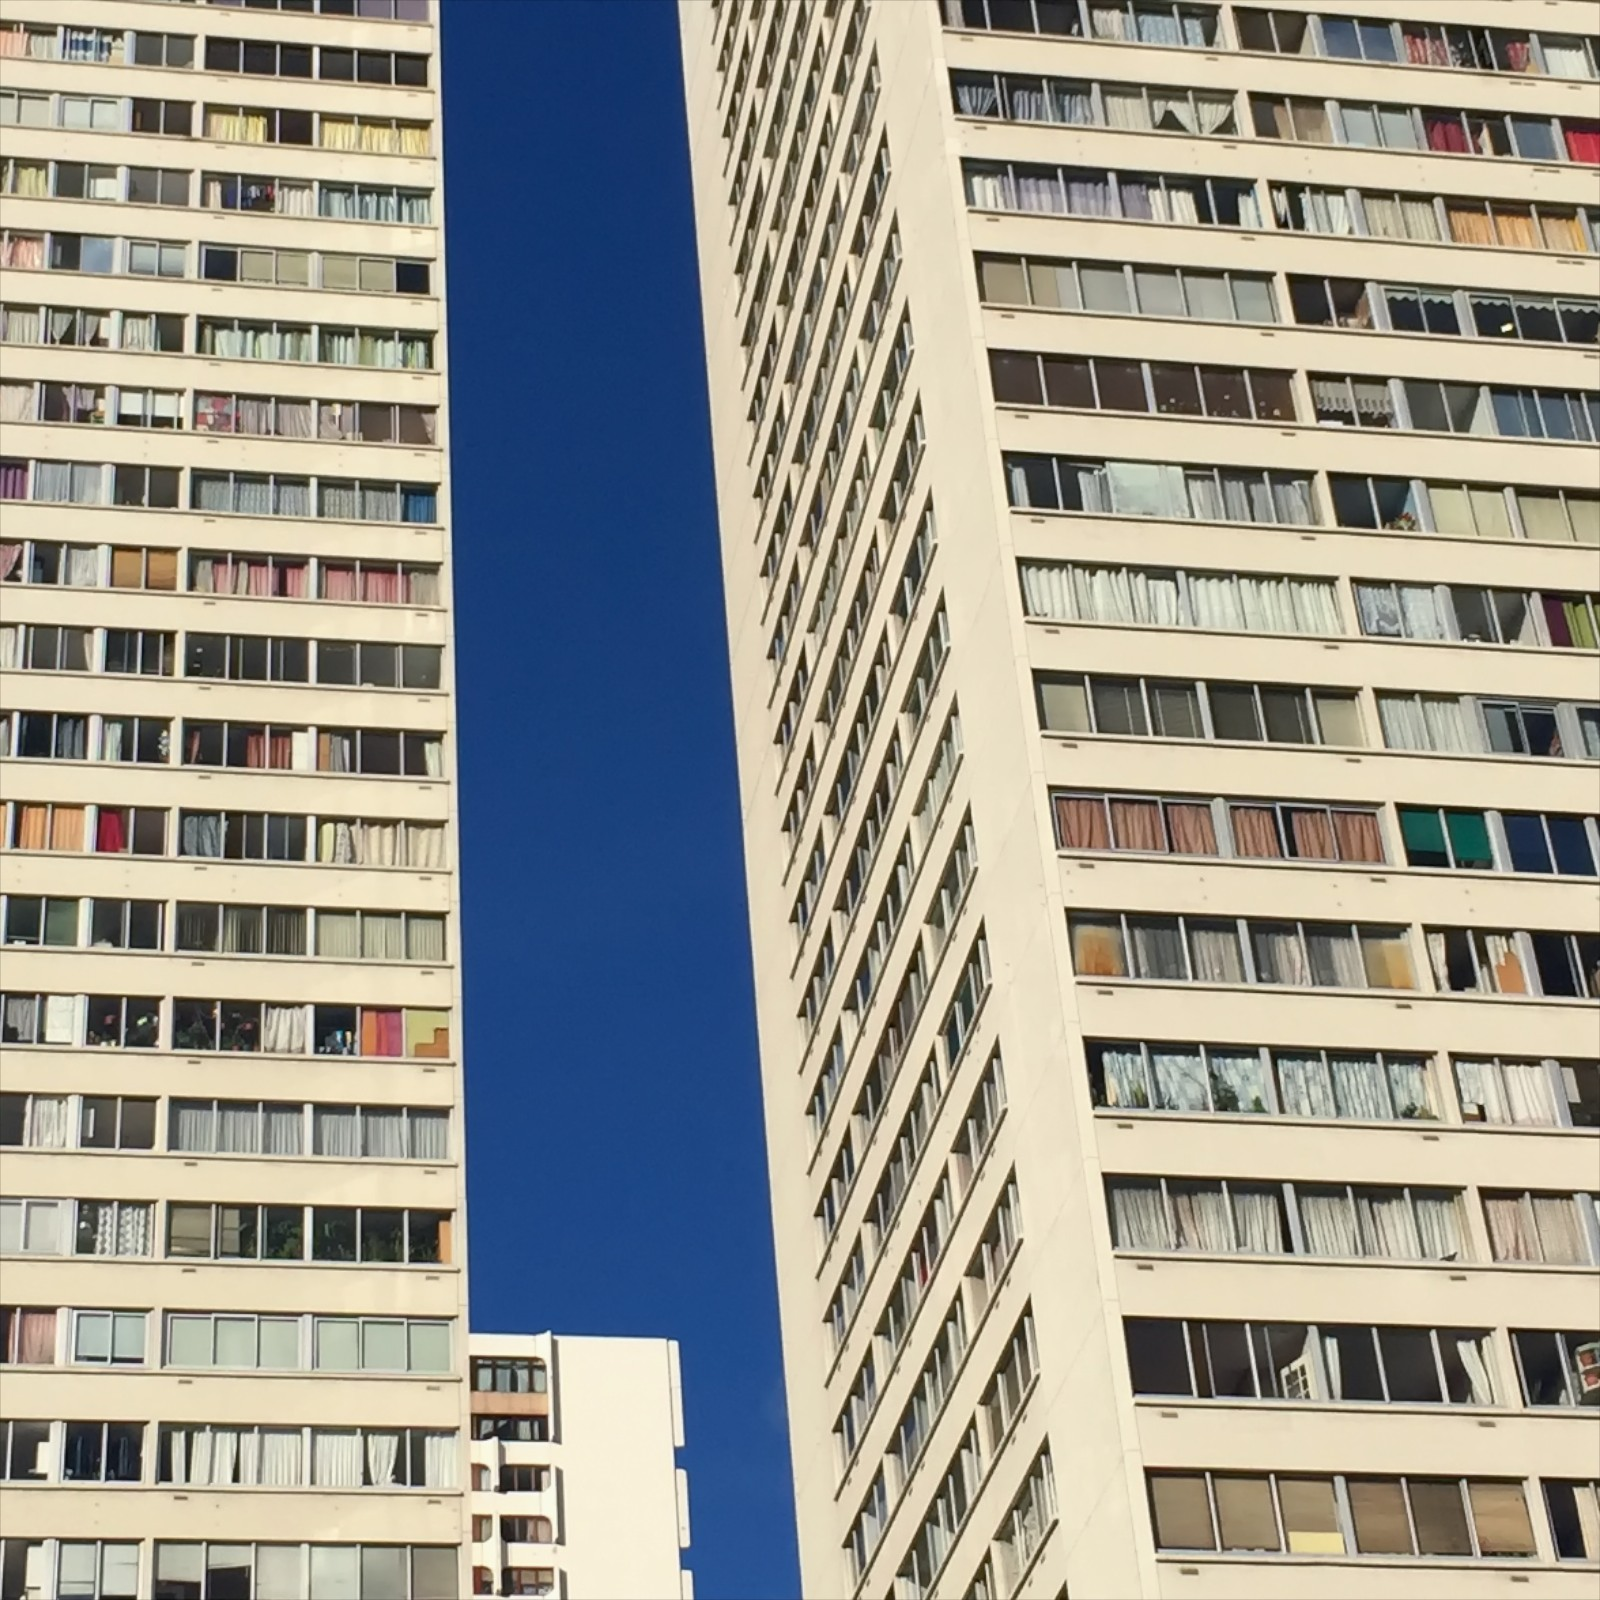 Out in the edge of the 13th arrondissement, the glamour of the center is replaced with towers.